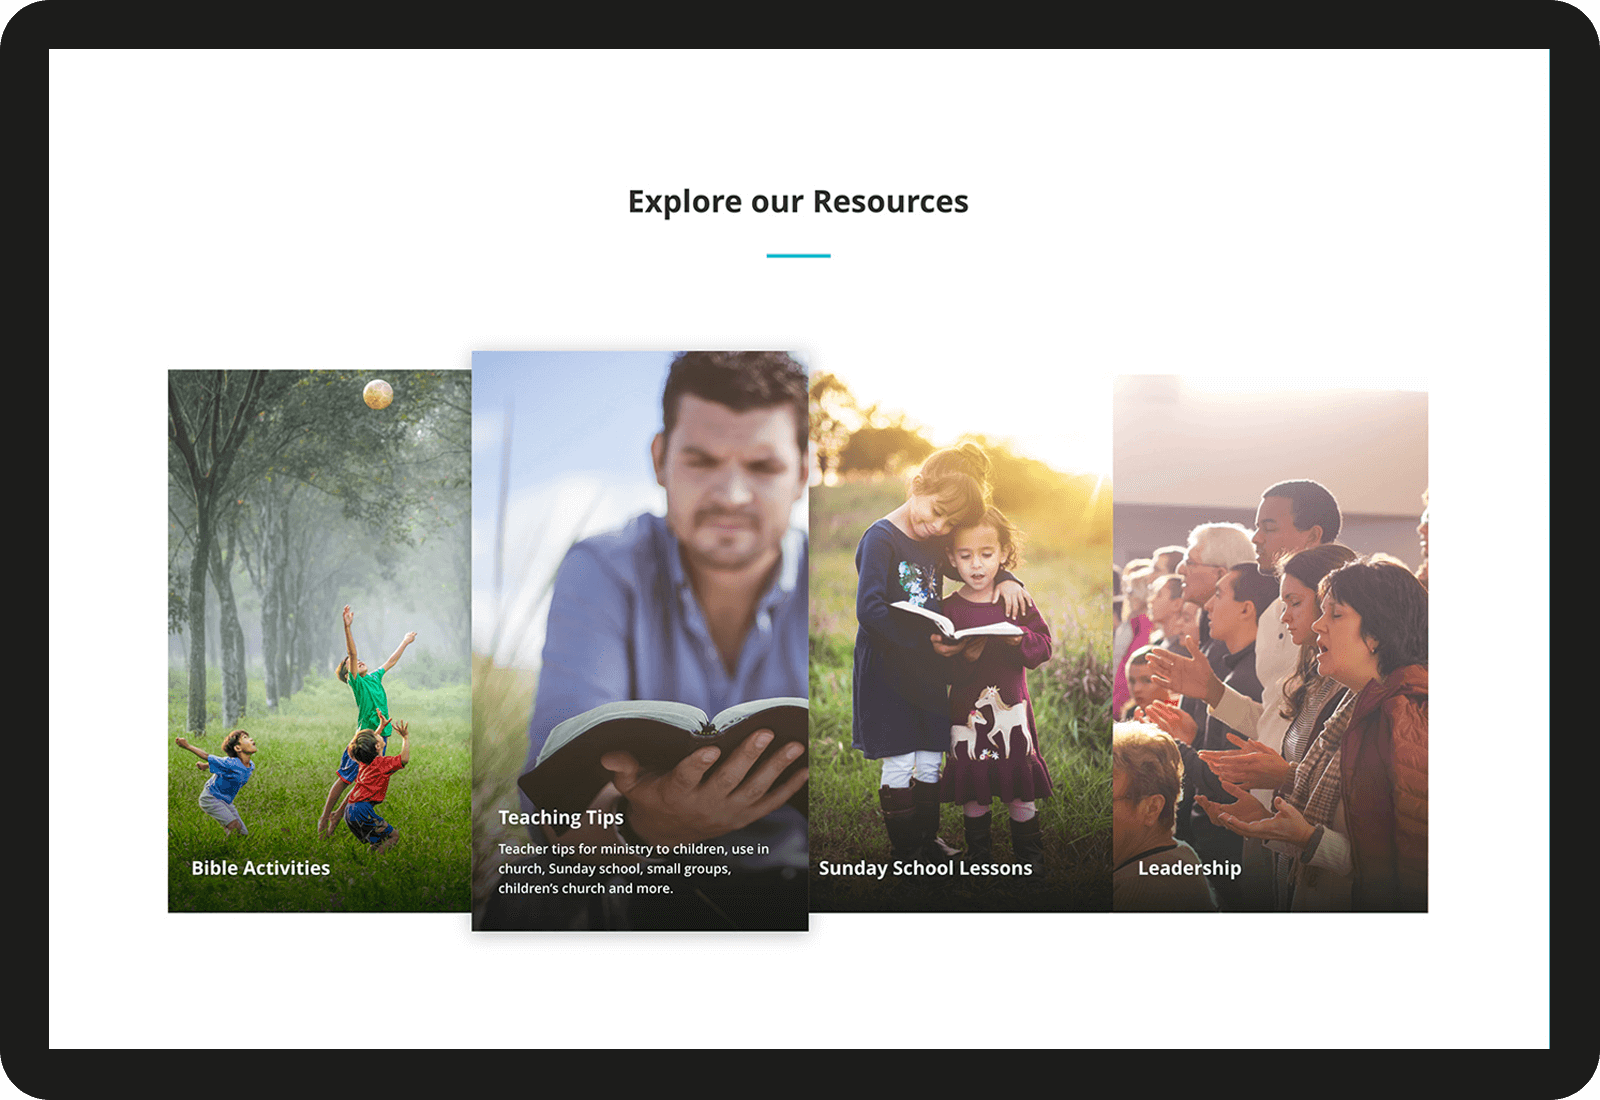 Children's Ministry - Explore our Resources